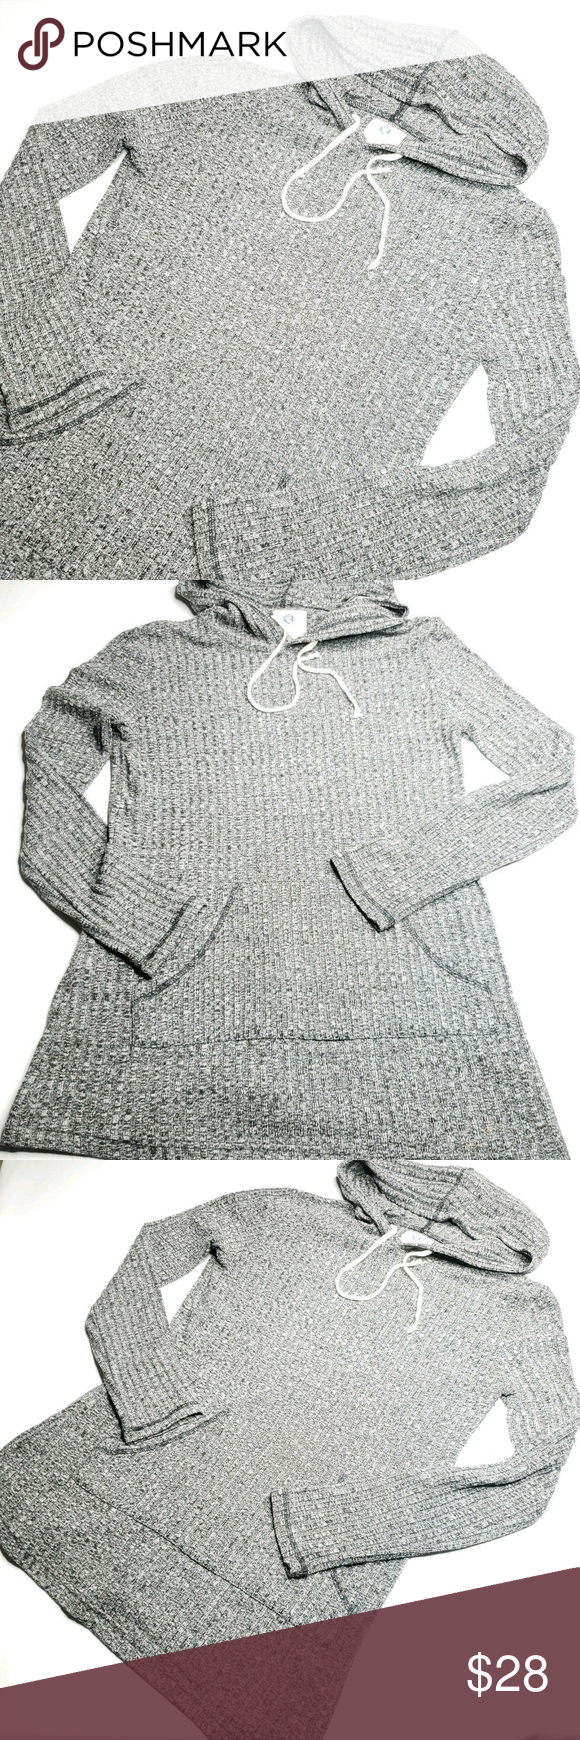 Sadie Robertson Grey Black Hooded Top Size jrs M Wild Blue Sadie Robertson Grey Black Heathered Hooded Long Sleeve Top Size jrs M    18.5 inches underarm to underarm  29 inches shoulder to hem    85% polyester 12% Rayon    In good shape, no flaws to note!    Please feel free to ask questions  Wild Blue Sadie Robertson Tops Tees - Long Sleeve #sadierobertson